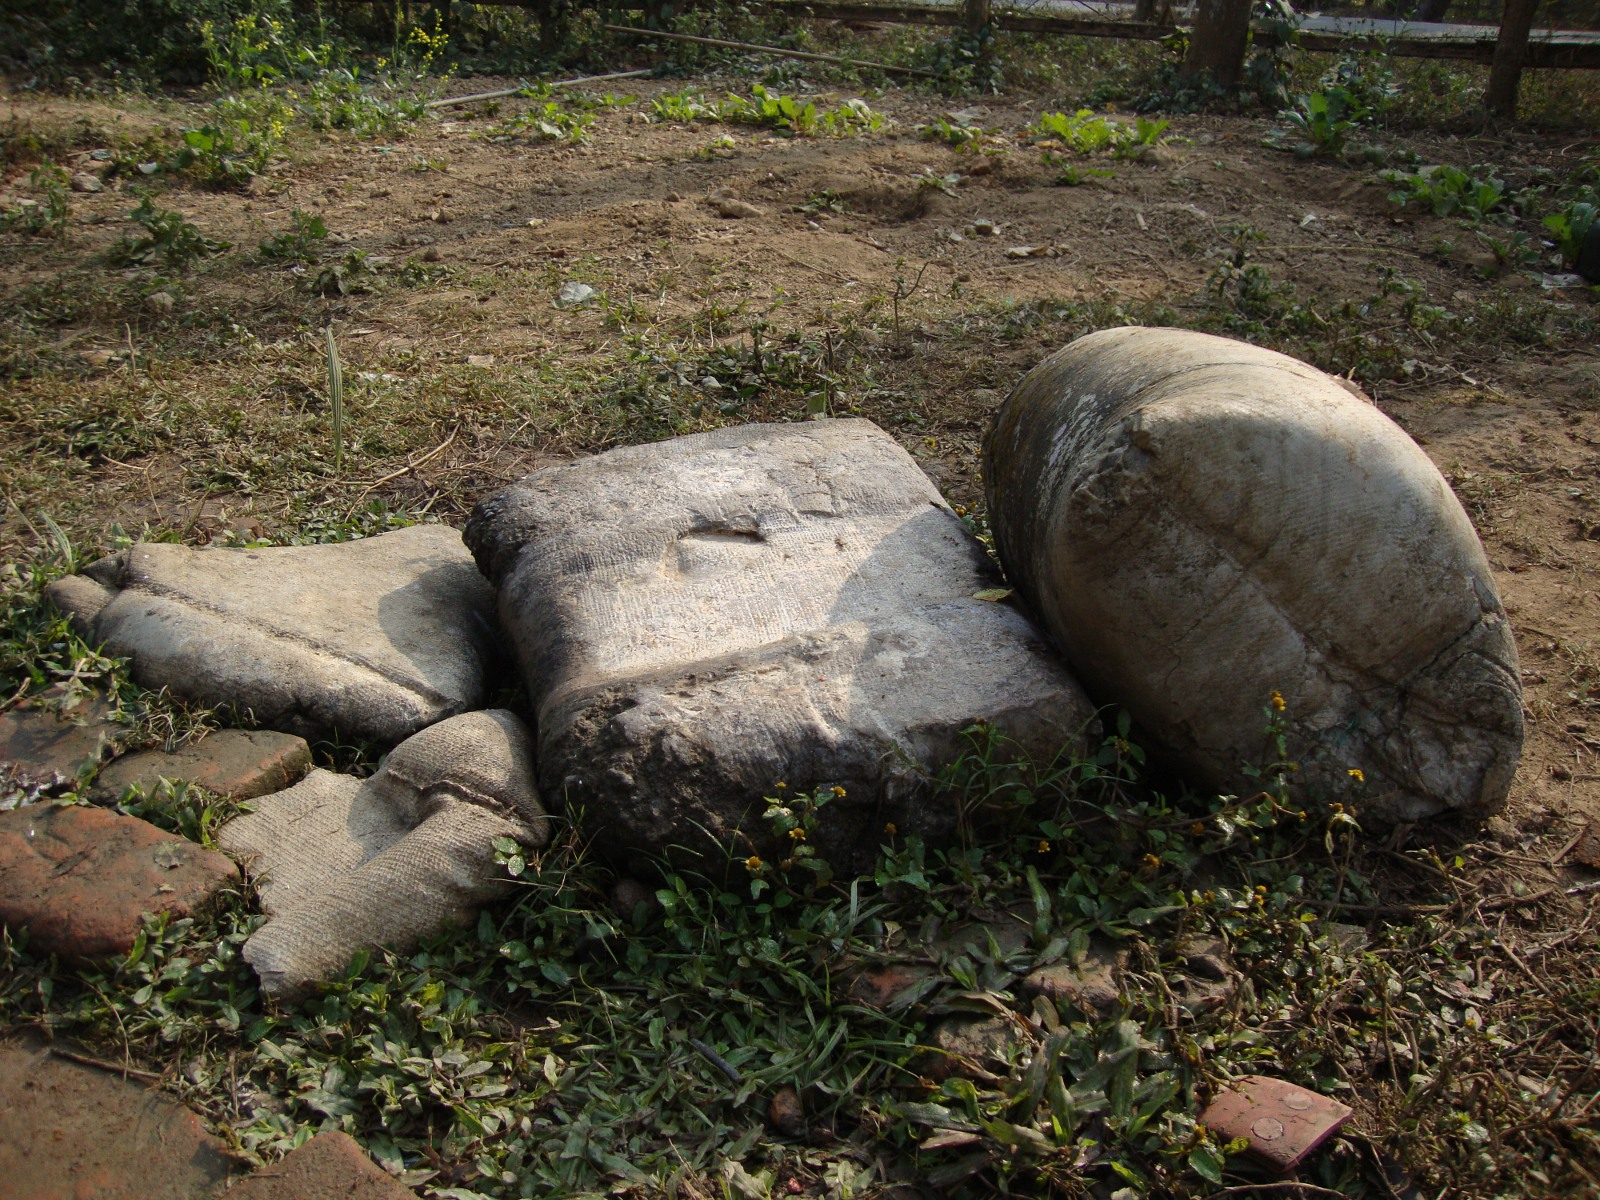 Wrecked cement bags.